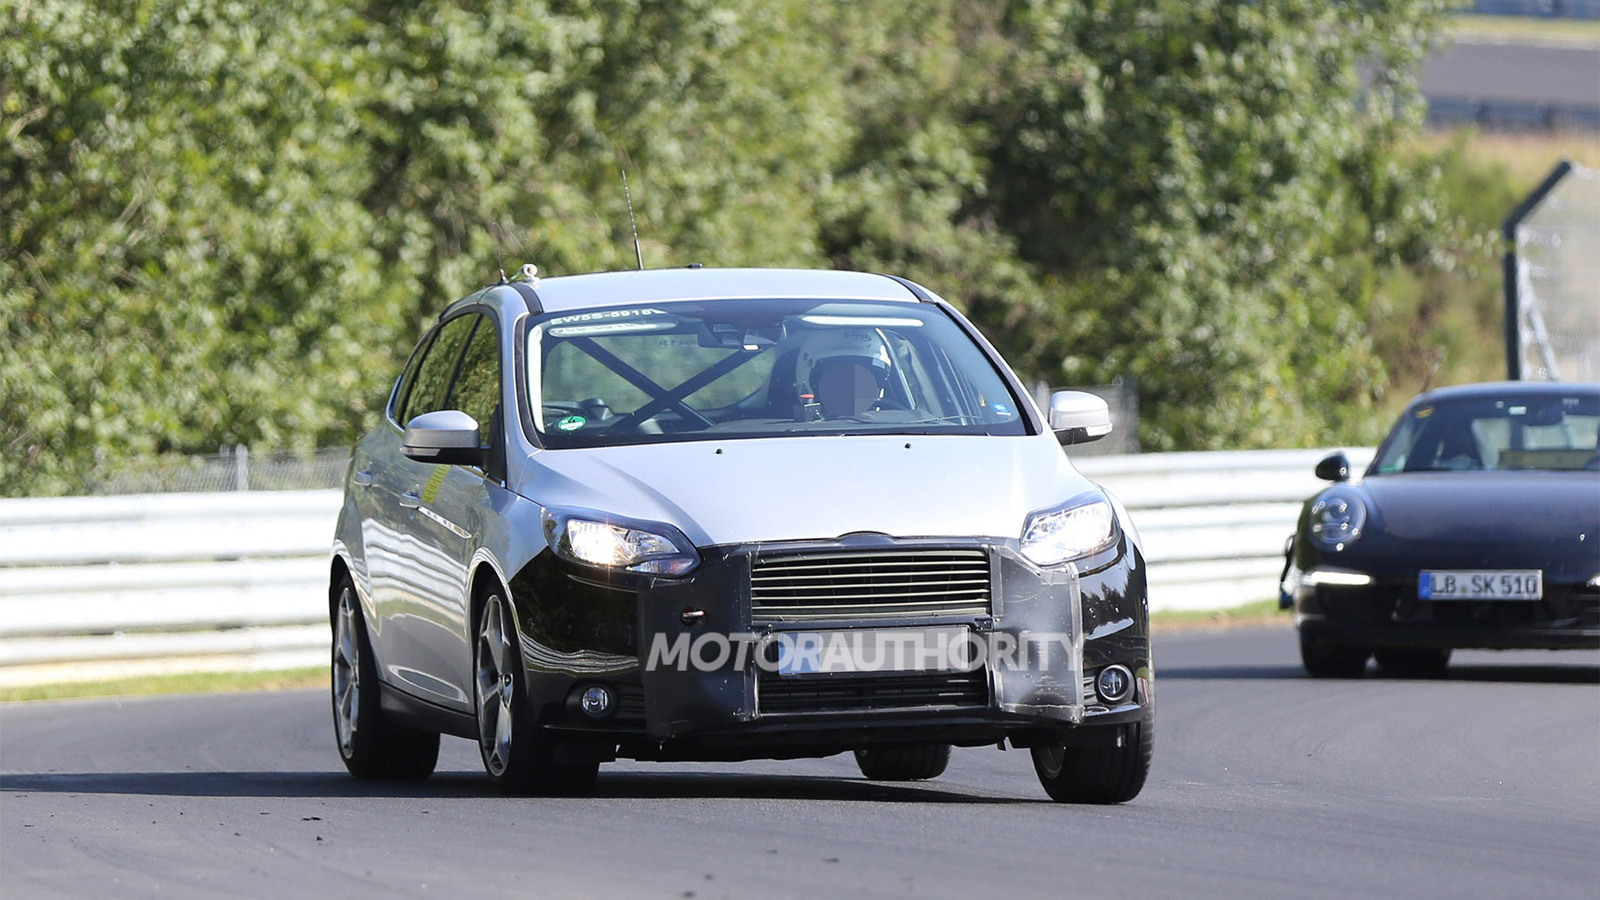 2015 Ford Focus ST facelift spy shots